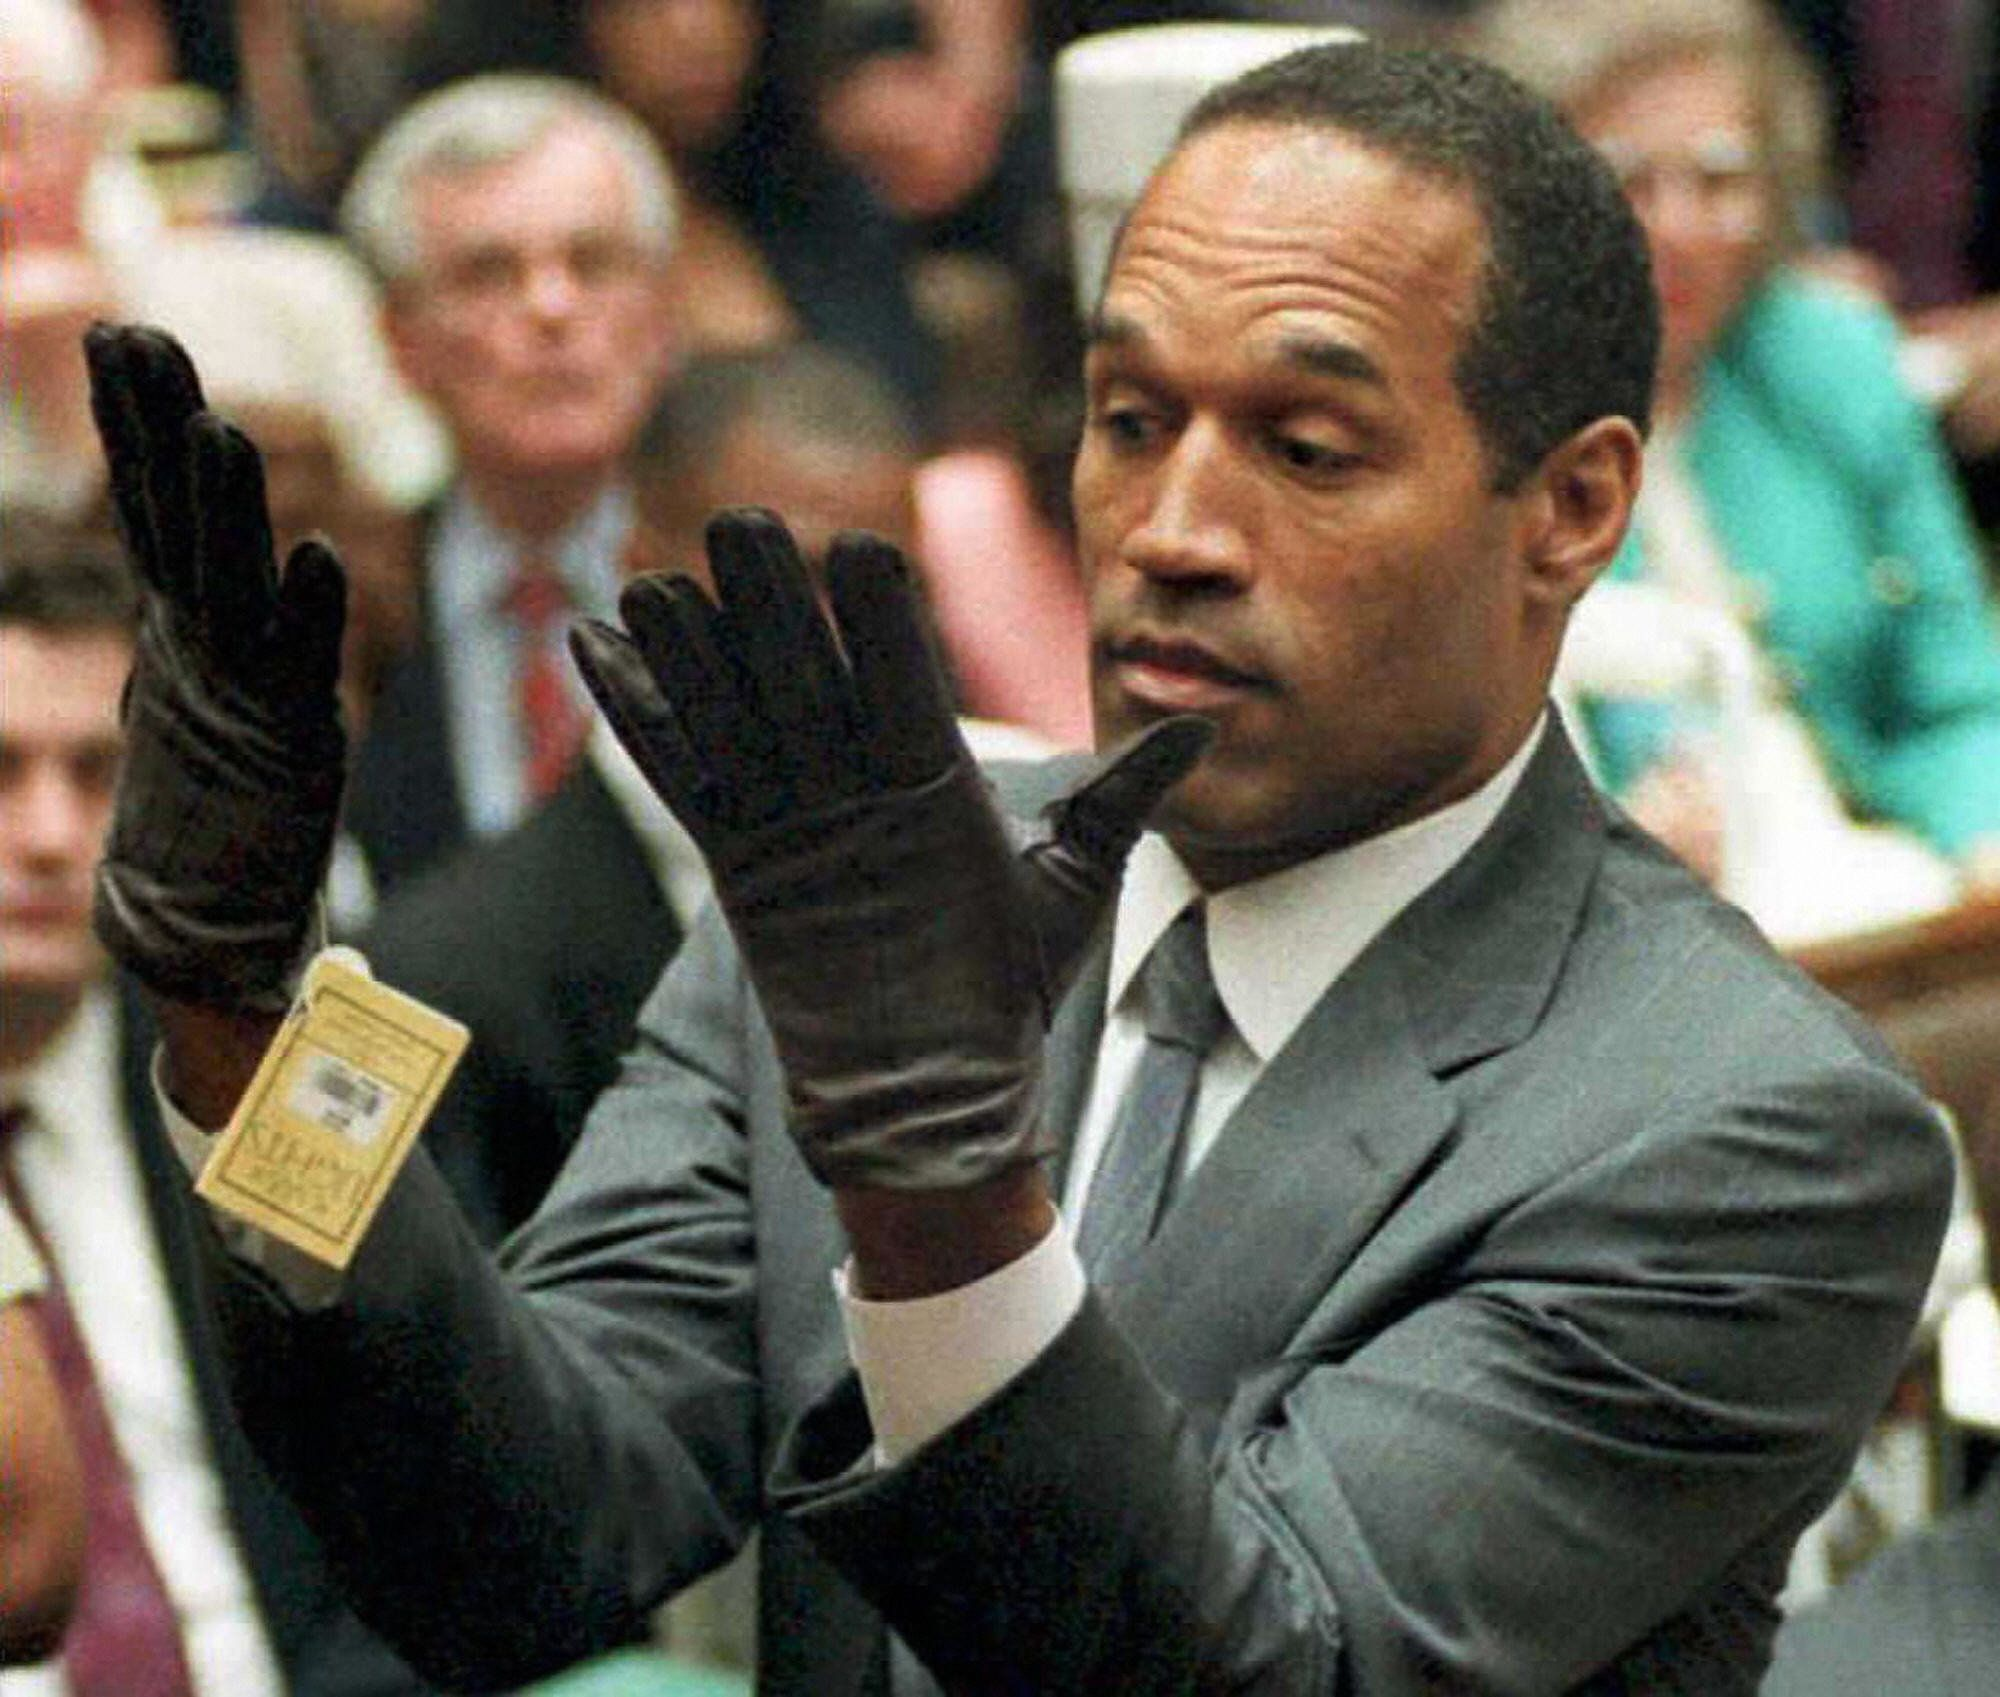 Los Angeles, UNITED STATES:  (FILES): This 21 June 1995 file photo shows former US football player and actor O.J. Simpson looking at a new pair of Aris extra-large gloves that prosecutors had him put on during his double-murder trial in Los Angeles. Media tycoon Rupert Murdoch announced 20 November 2006 the cancellation of a controversial book and television interview involving O.J. Simpson being planned by his News Corp company.     AFP PHOTO/Vince BUCCI/FILES  (Photo credit should read VINCE BUCCI/AFP/Getty Images)